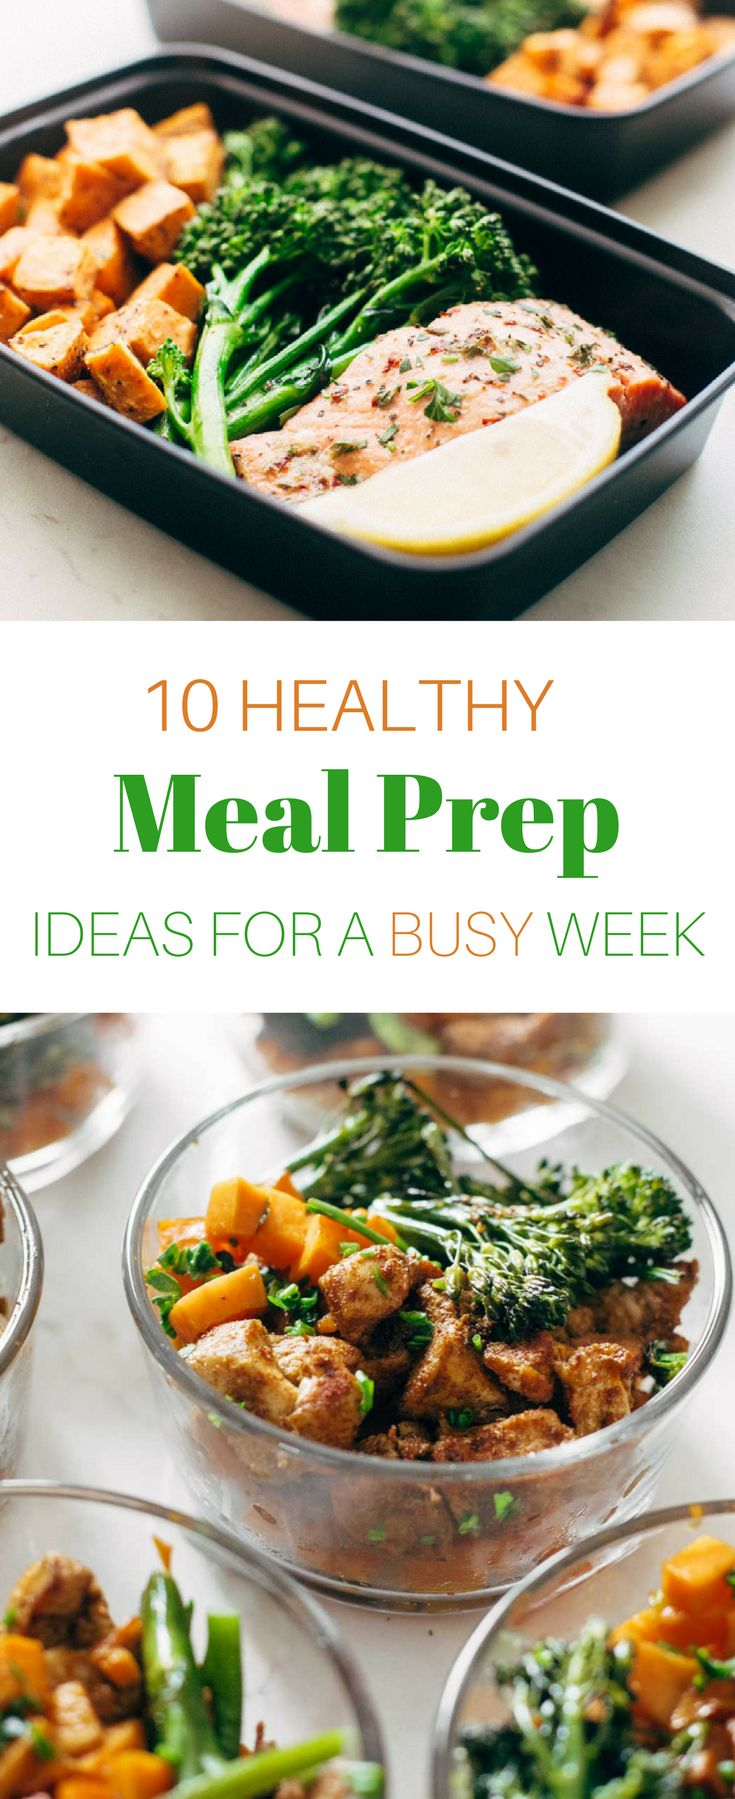 The easiest way to a healthy week? Plan ahead! These healthy meal prep ideas make weekday lunches a snap—and they're delicious, to boot. See more at spryliving.com #healthy_diet_ideas